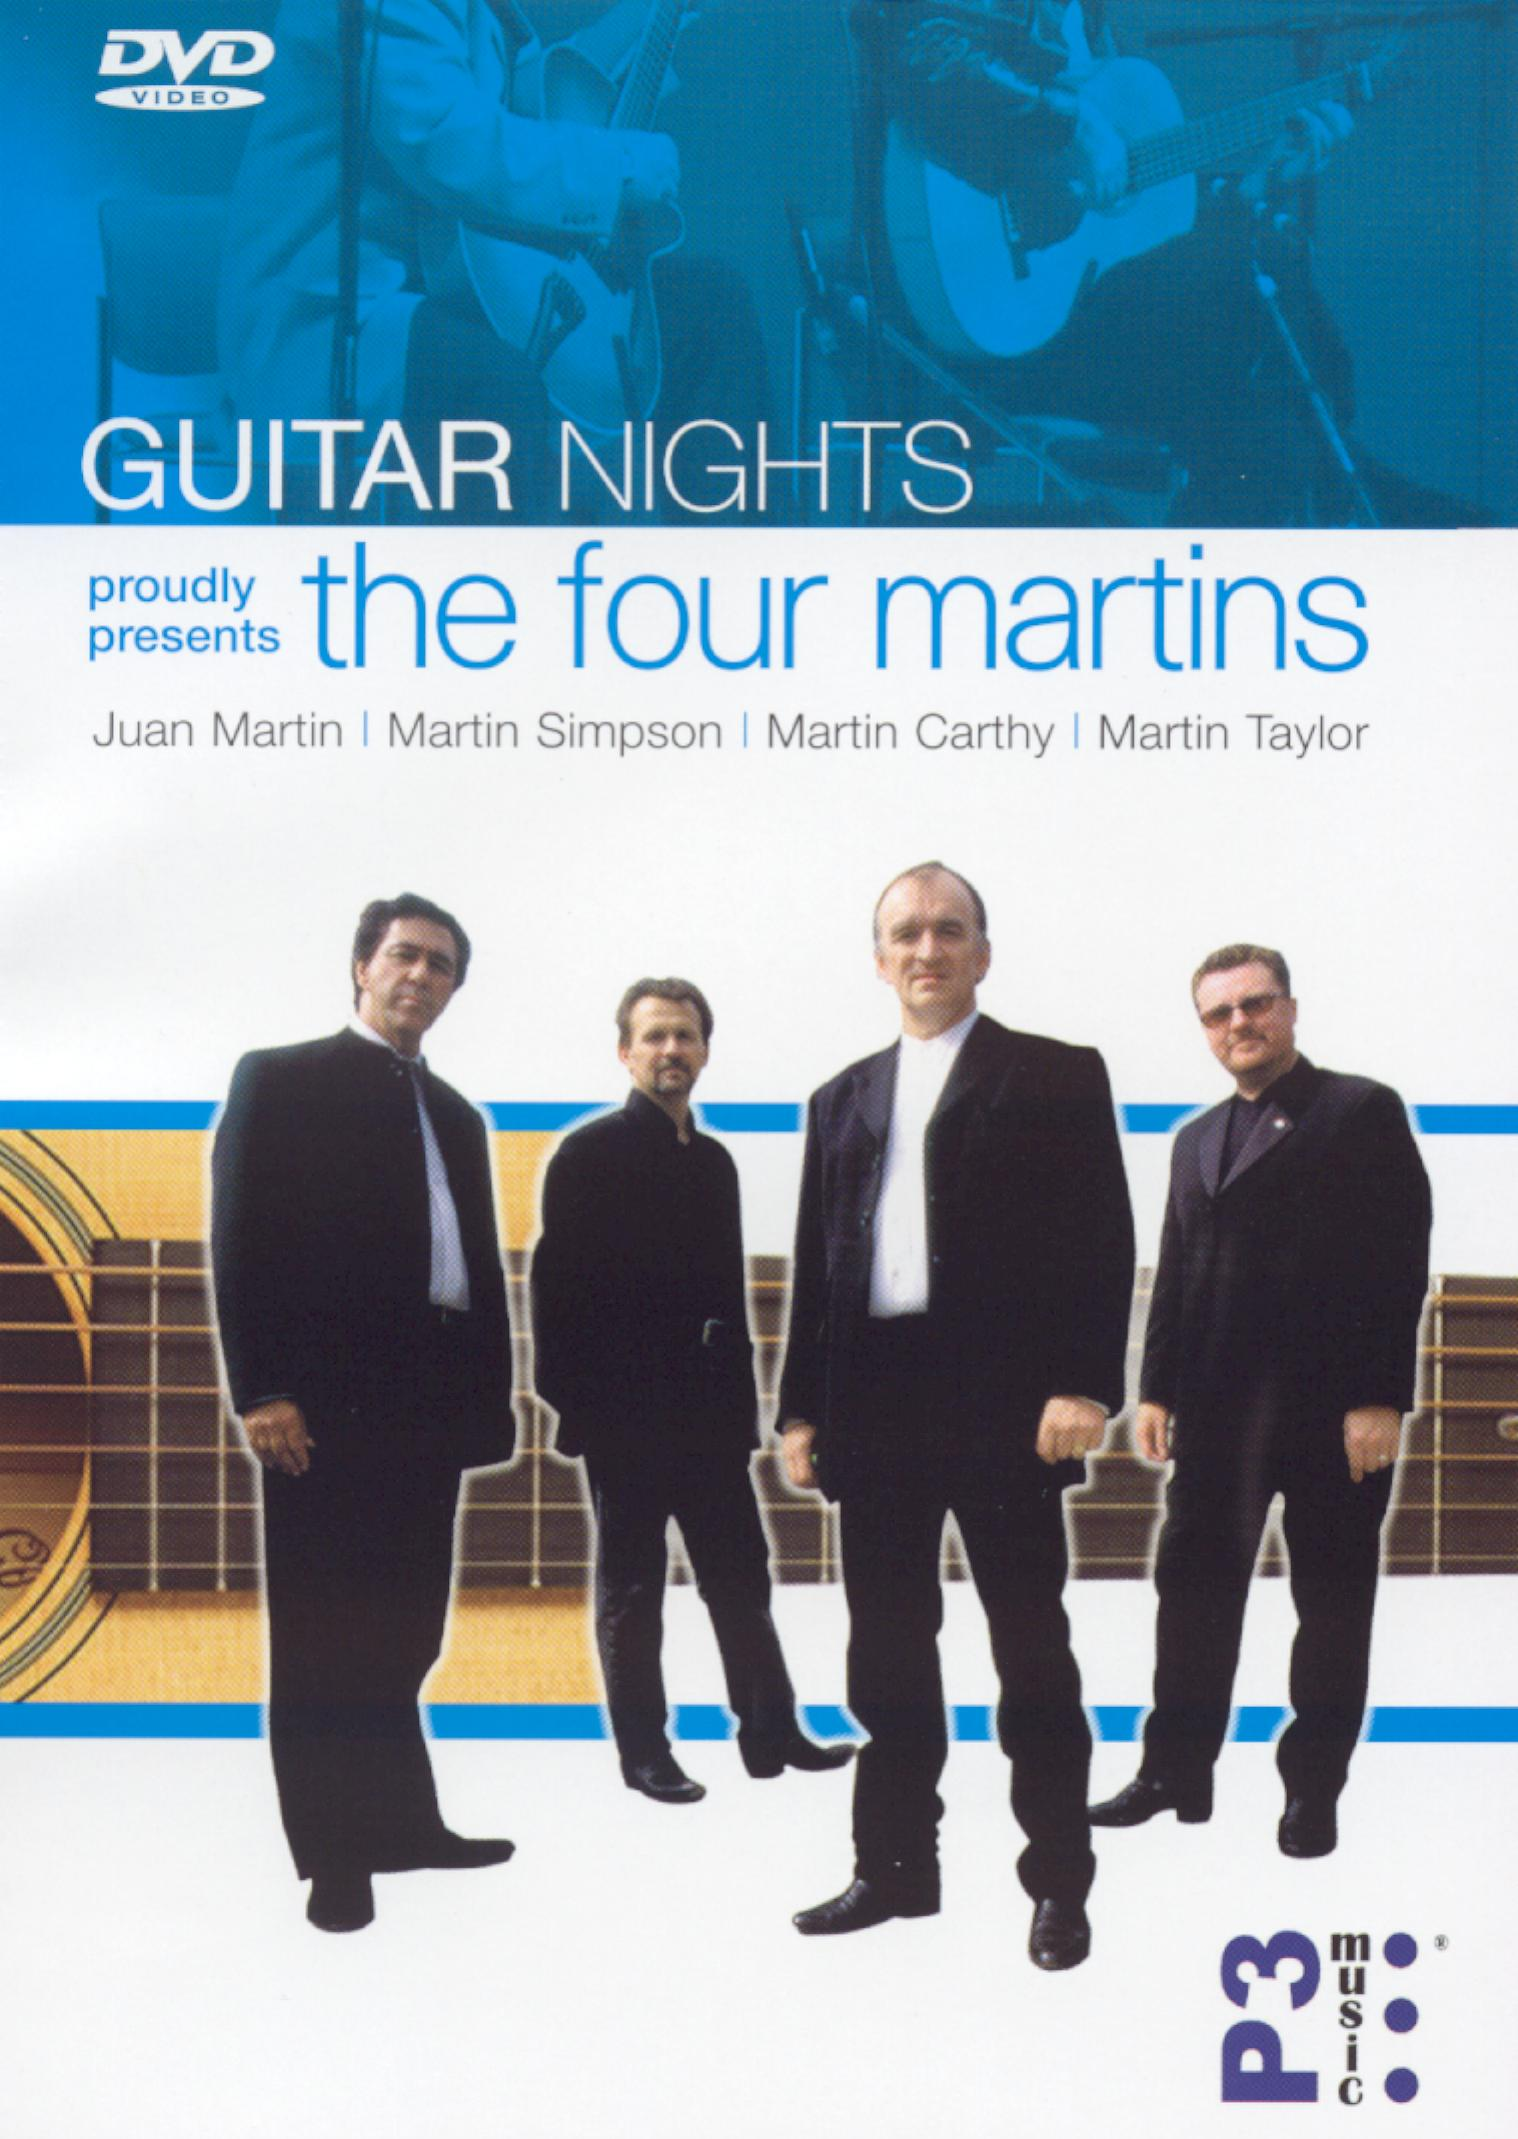 Guitar Nights: The Four Martins